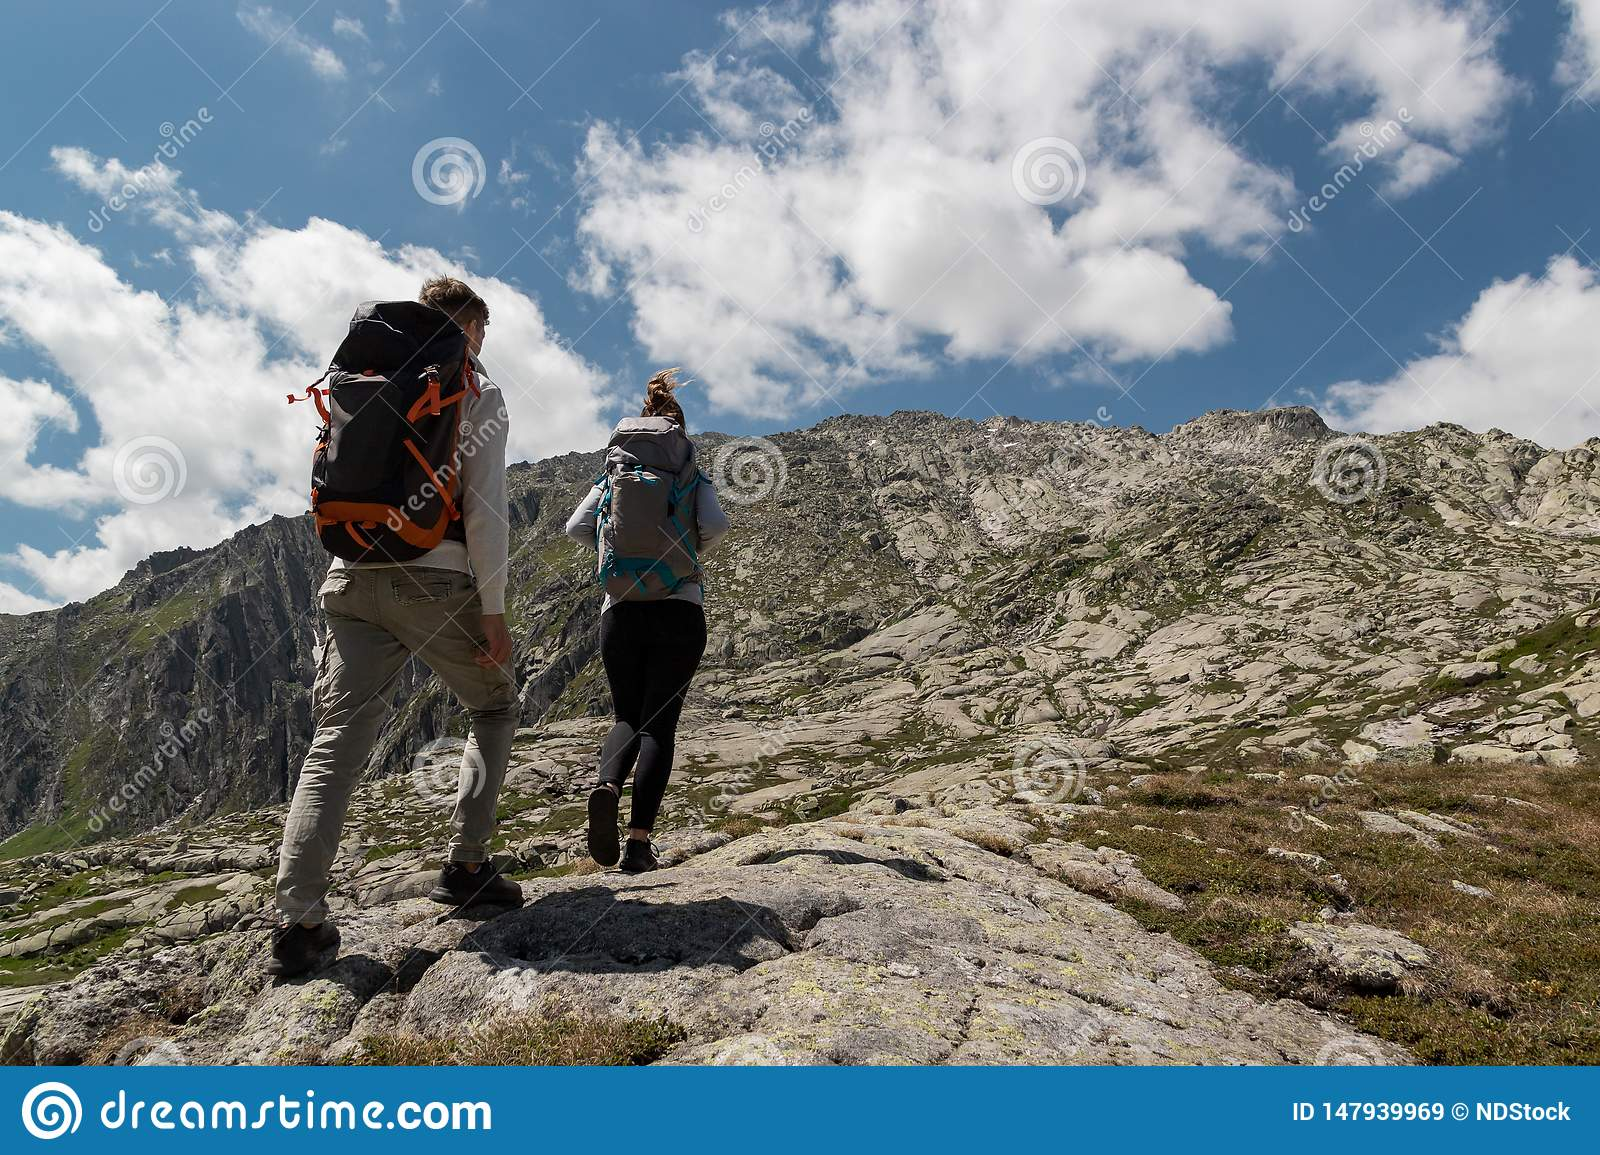 Young couple with big backpack walking to reach the top of the mountain during a sunny day